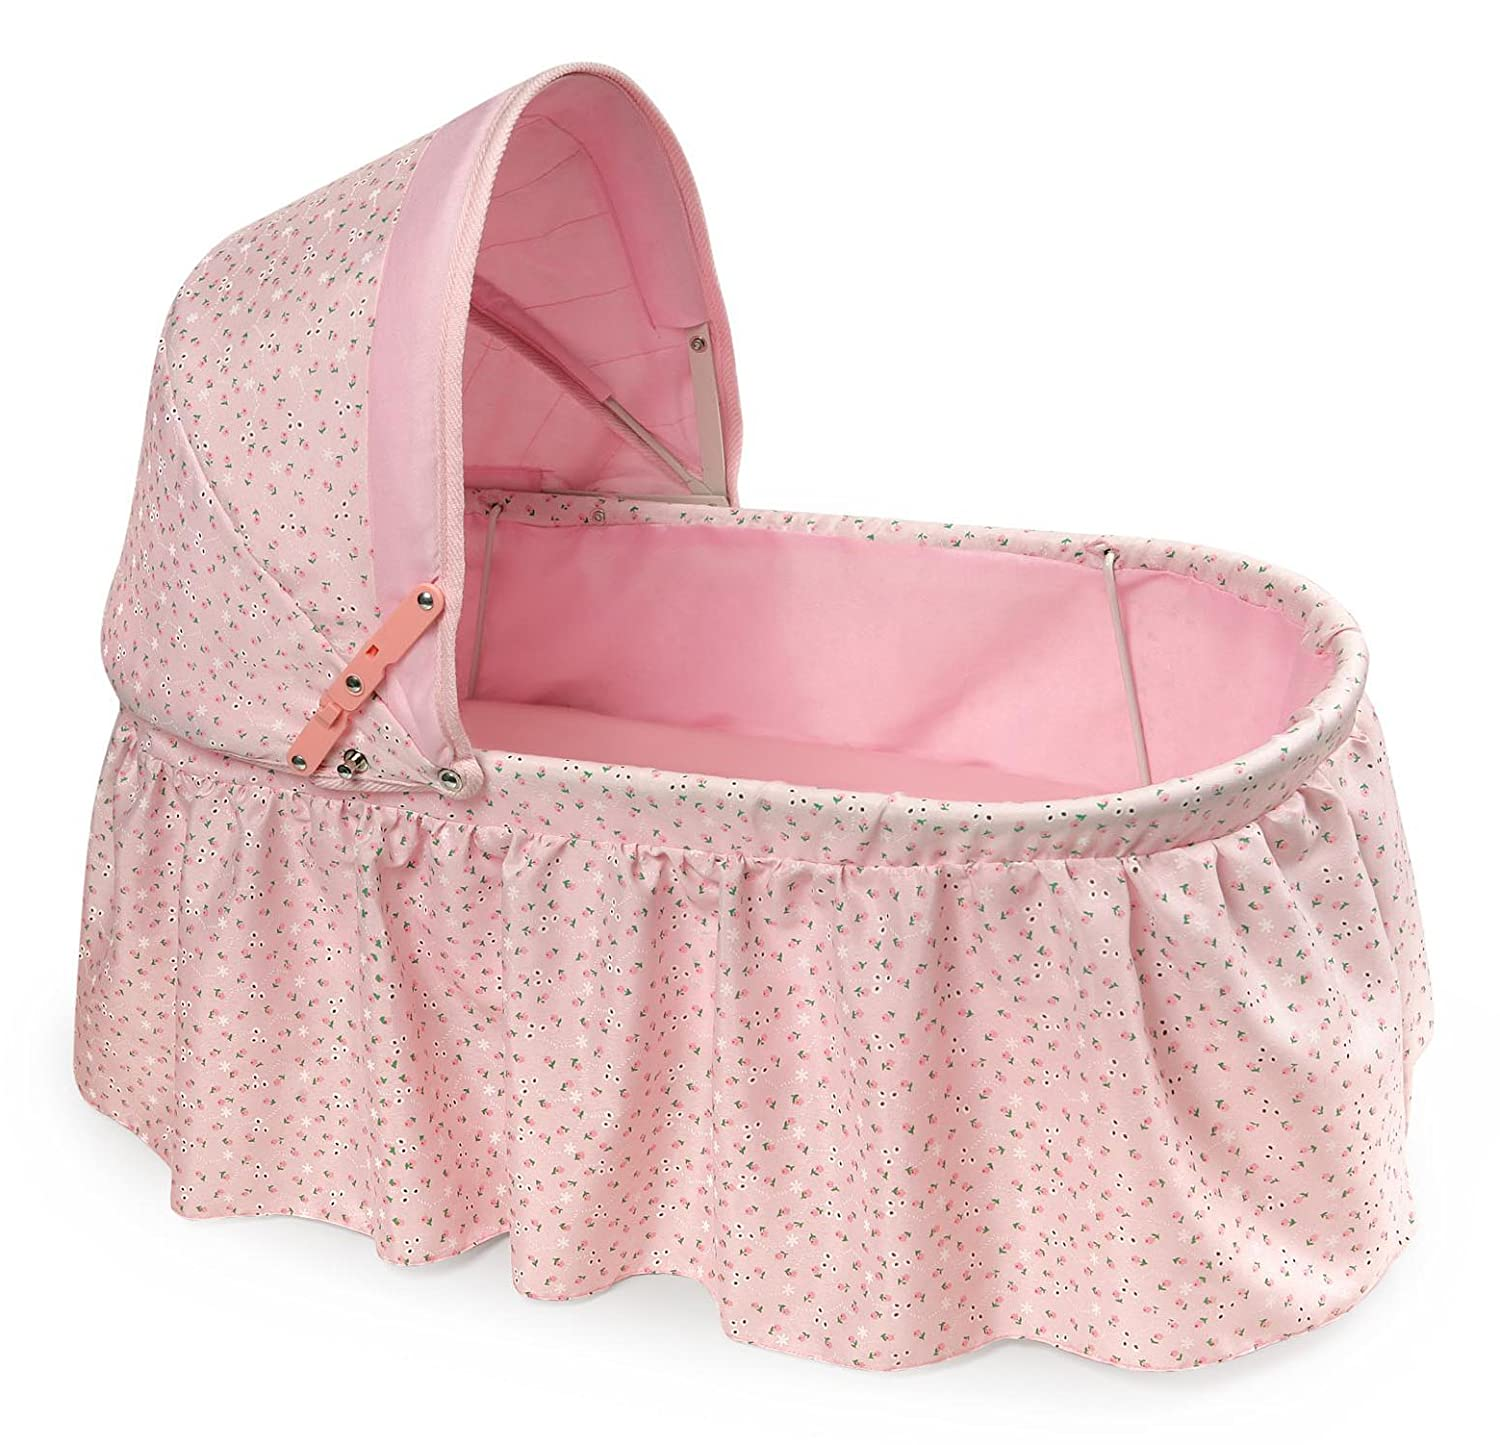 B001AMXZMM Badger Basket Folding Doll Cradle with Rosebud Fabric (fits American Girl Dolls) 813lrsLBF-L